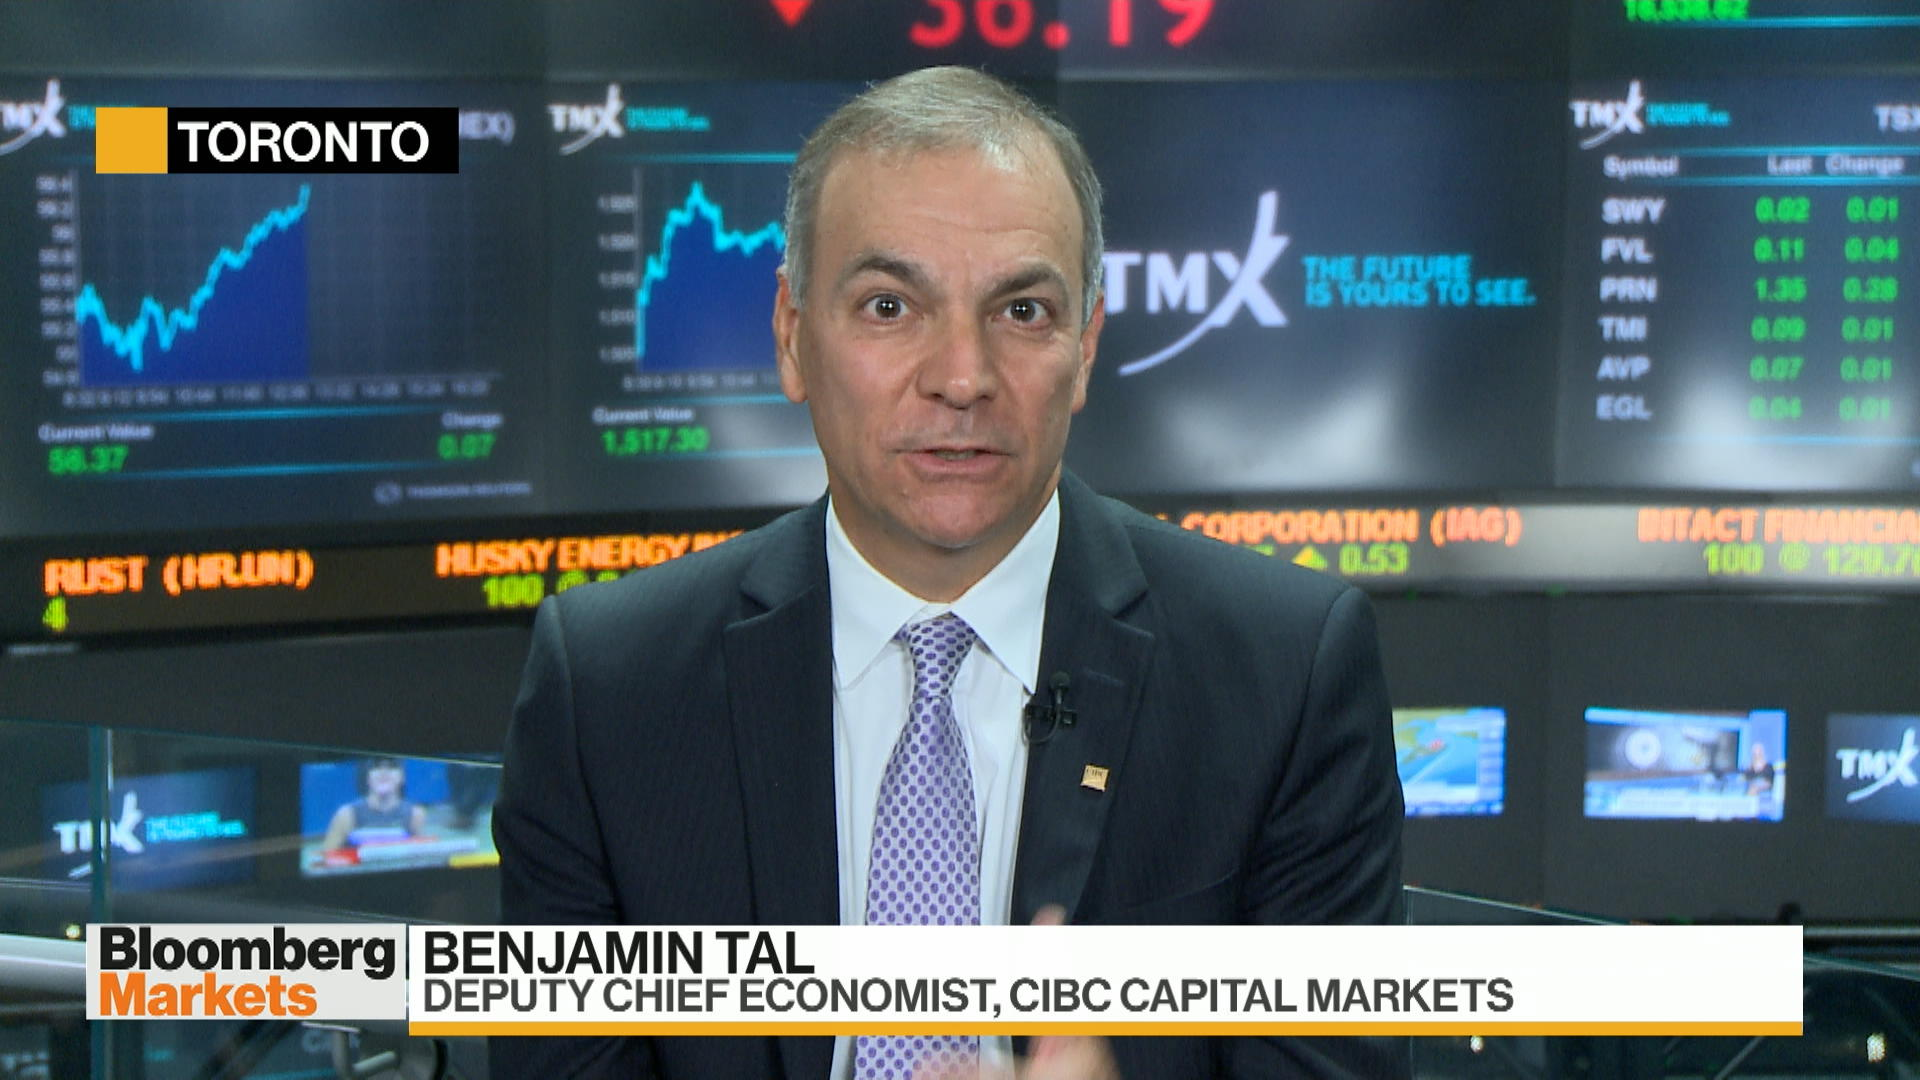 Labor Market Too Healthy for Bank of Canada to Cut, CIBC's Tal Says